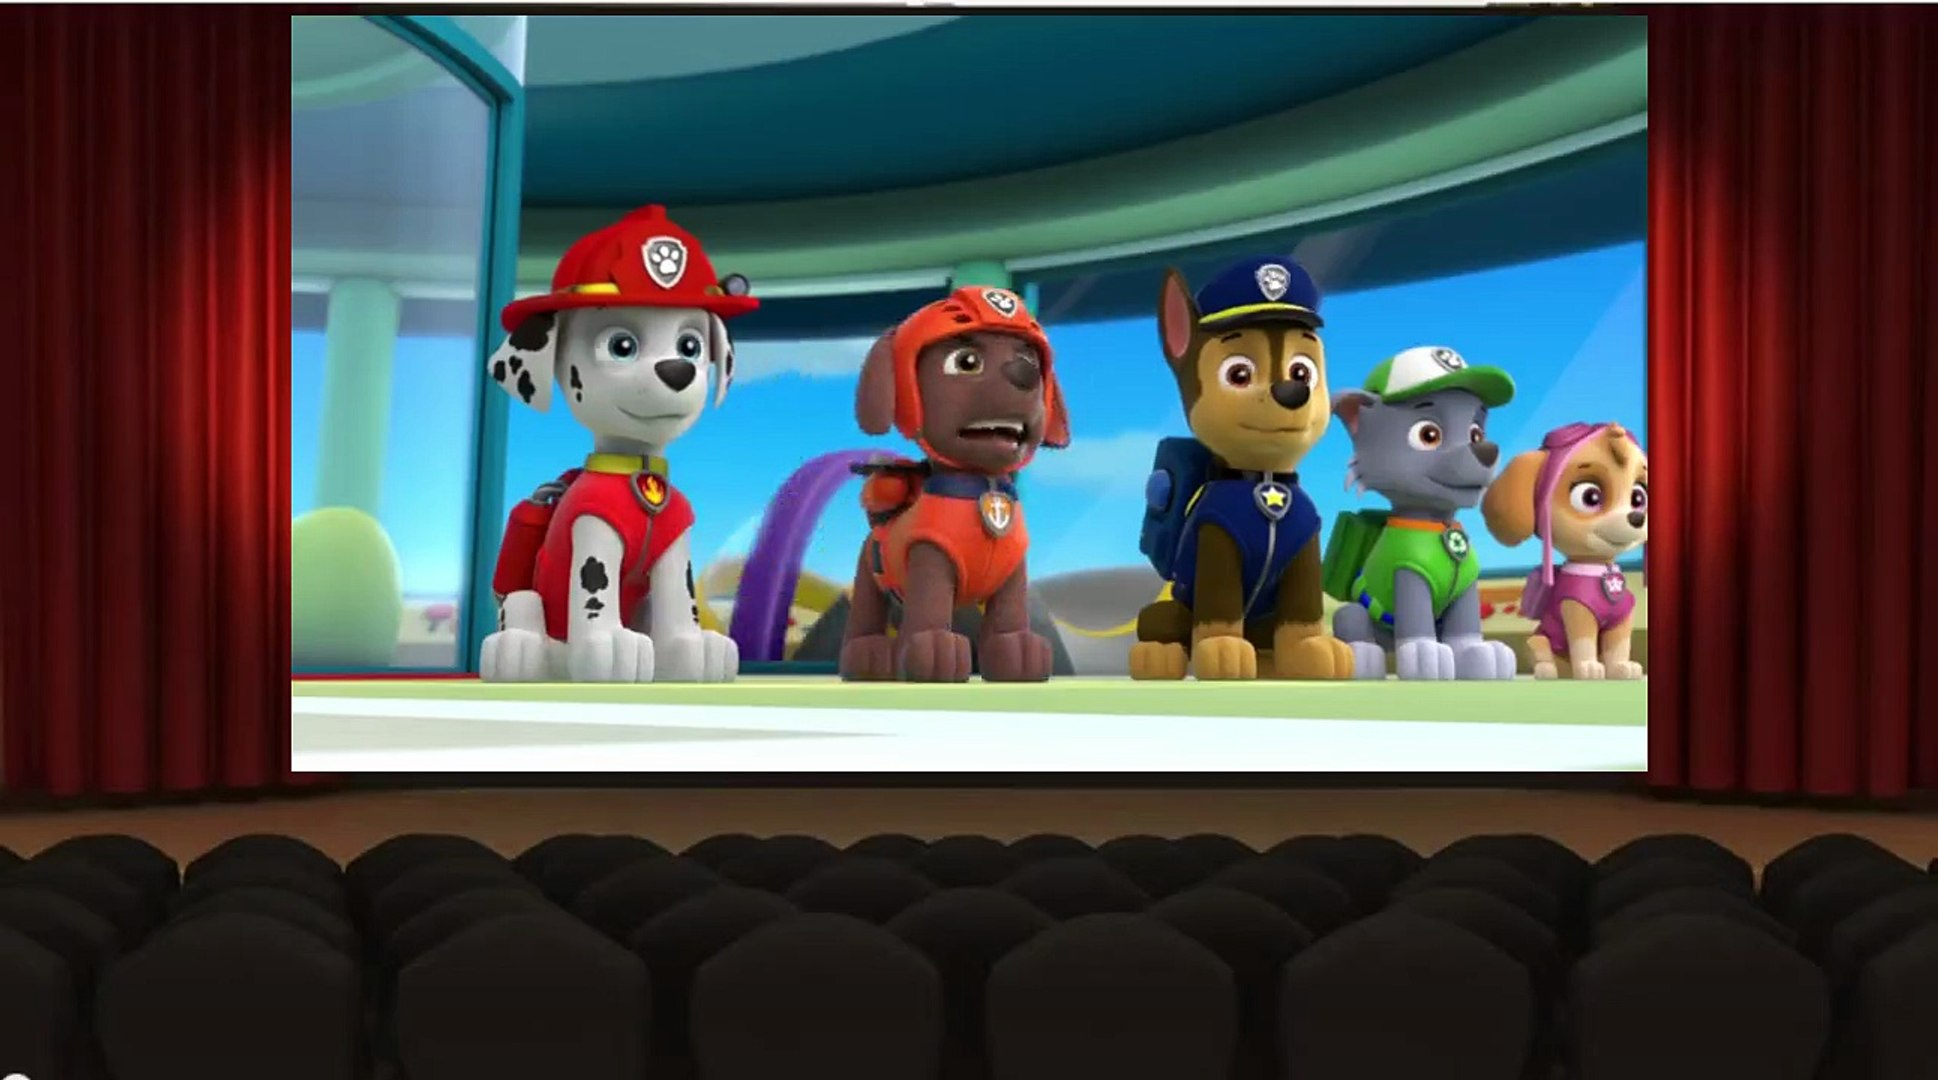 PAW Patrol - S 1 E 18 - Pups Save a Super Pup - Pups Save Ryders Robot